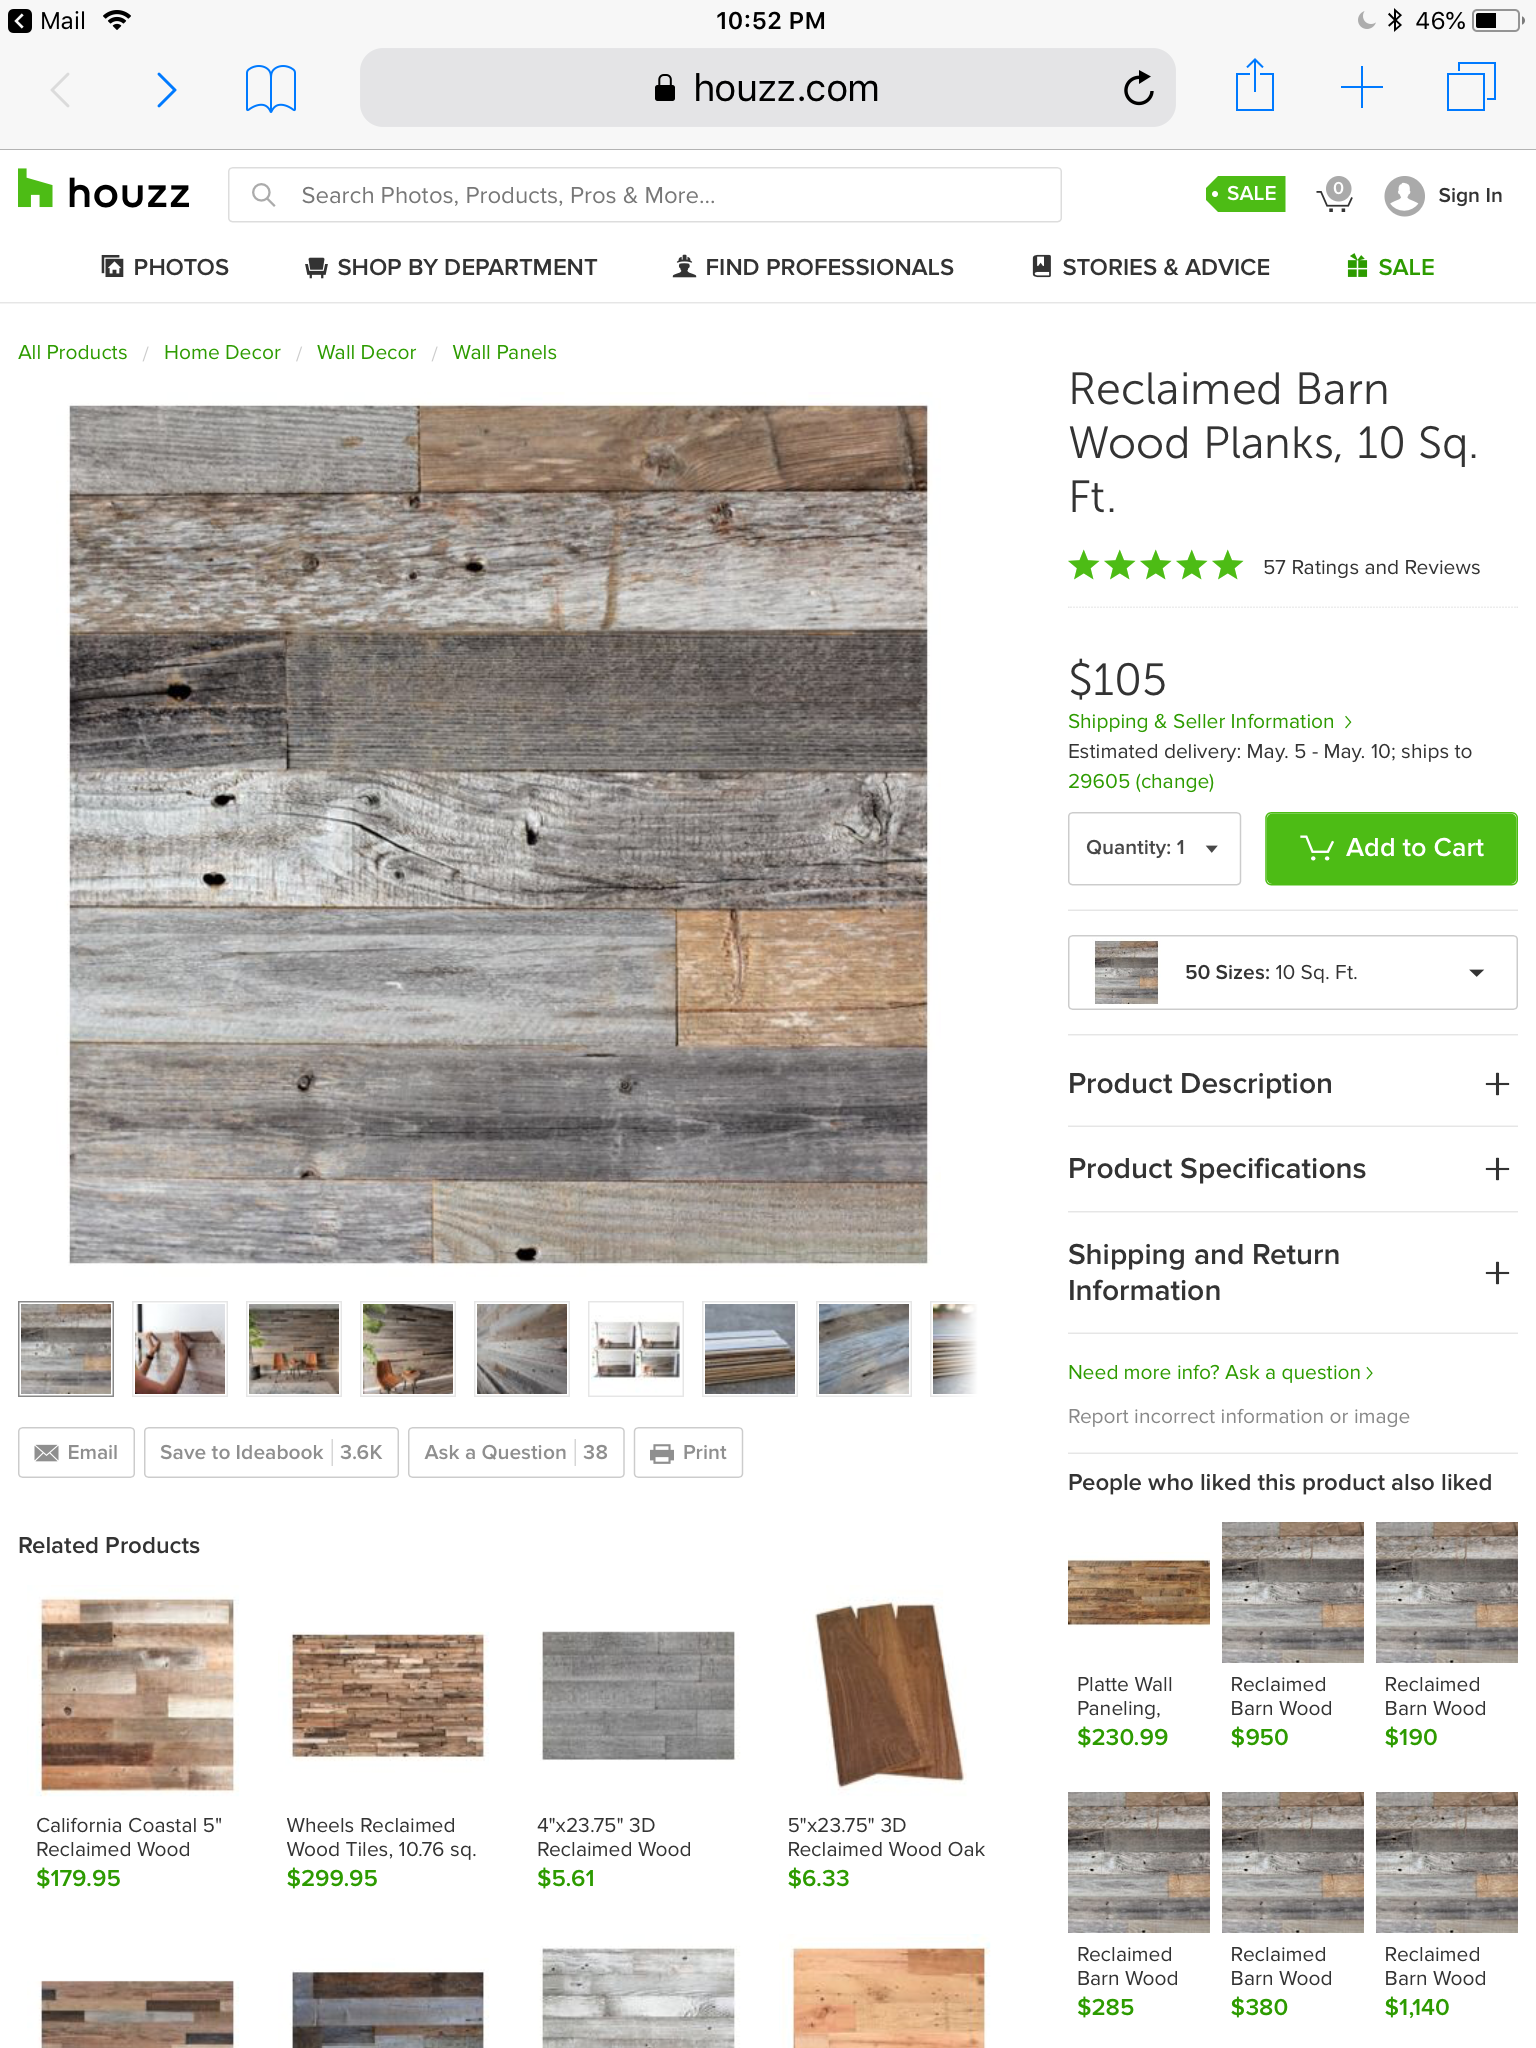 Pin by Sharon Strogen on Home decor | Reclaimed barn wood ...